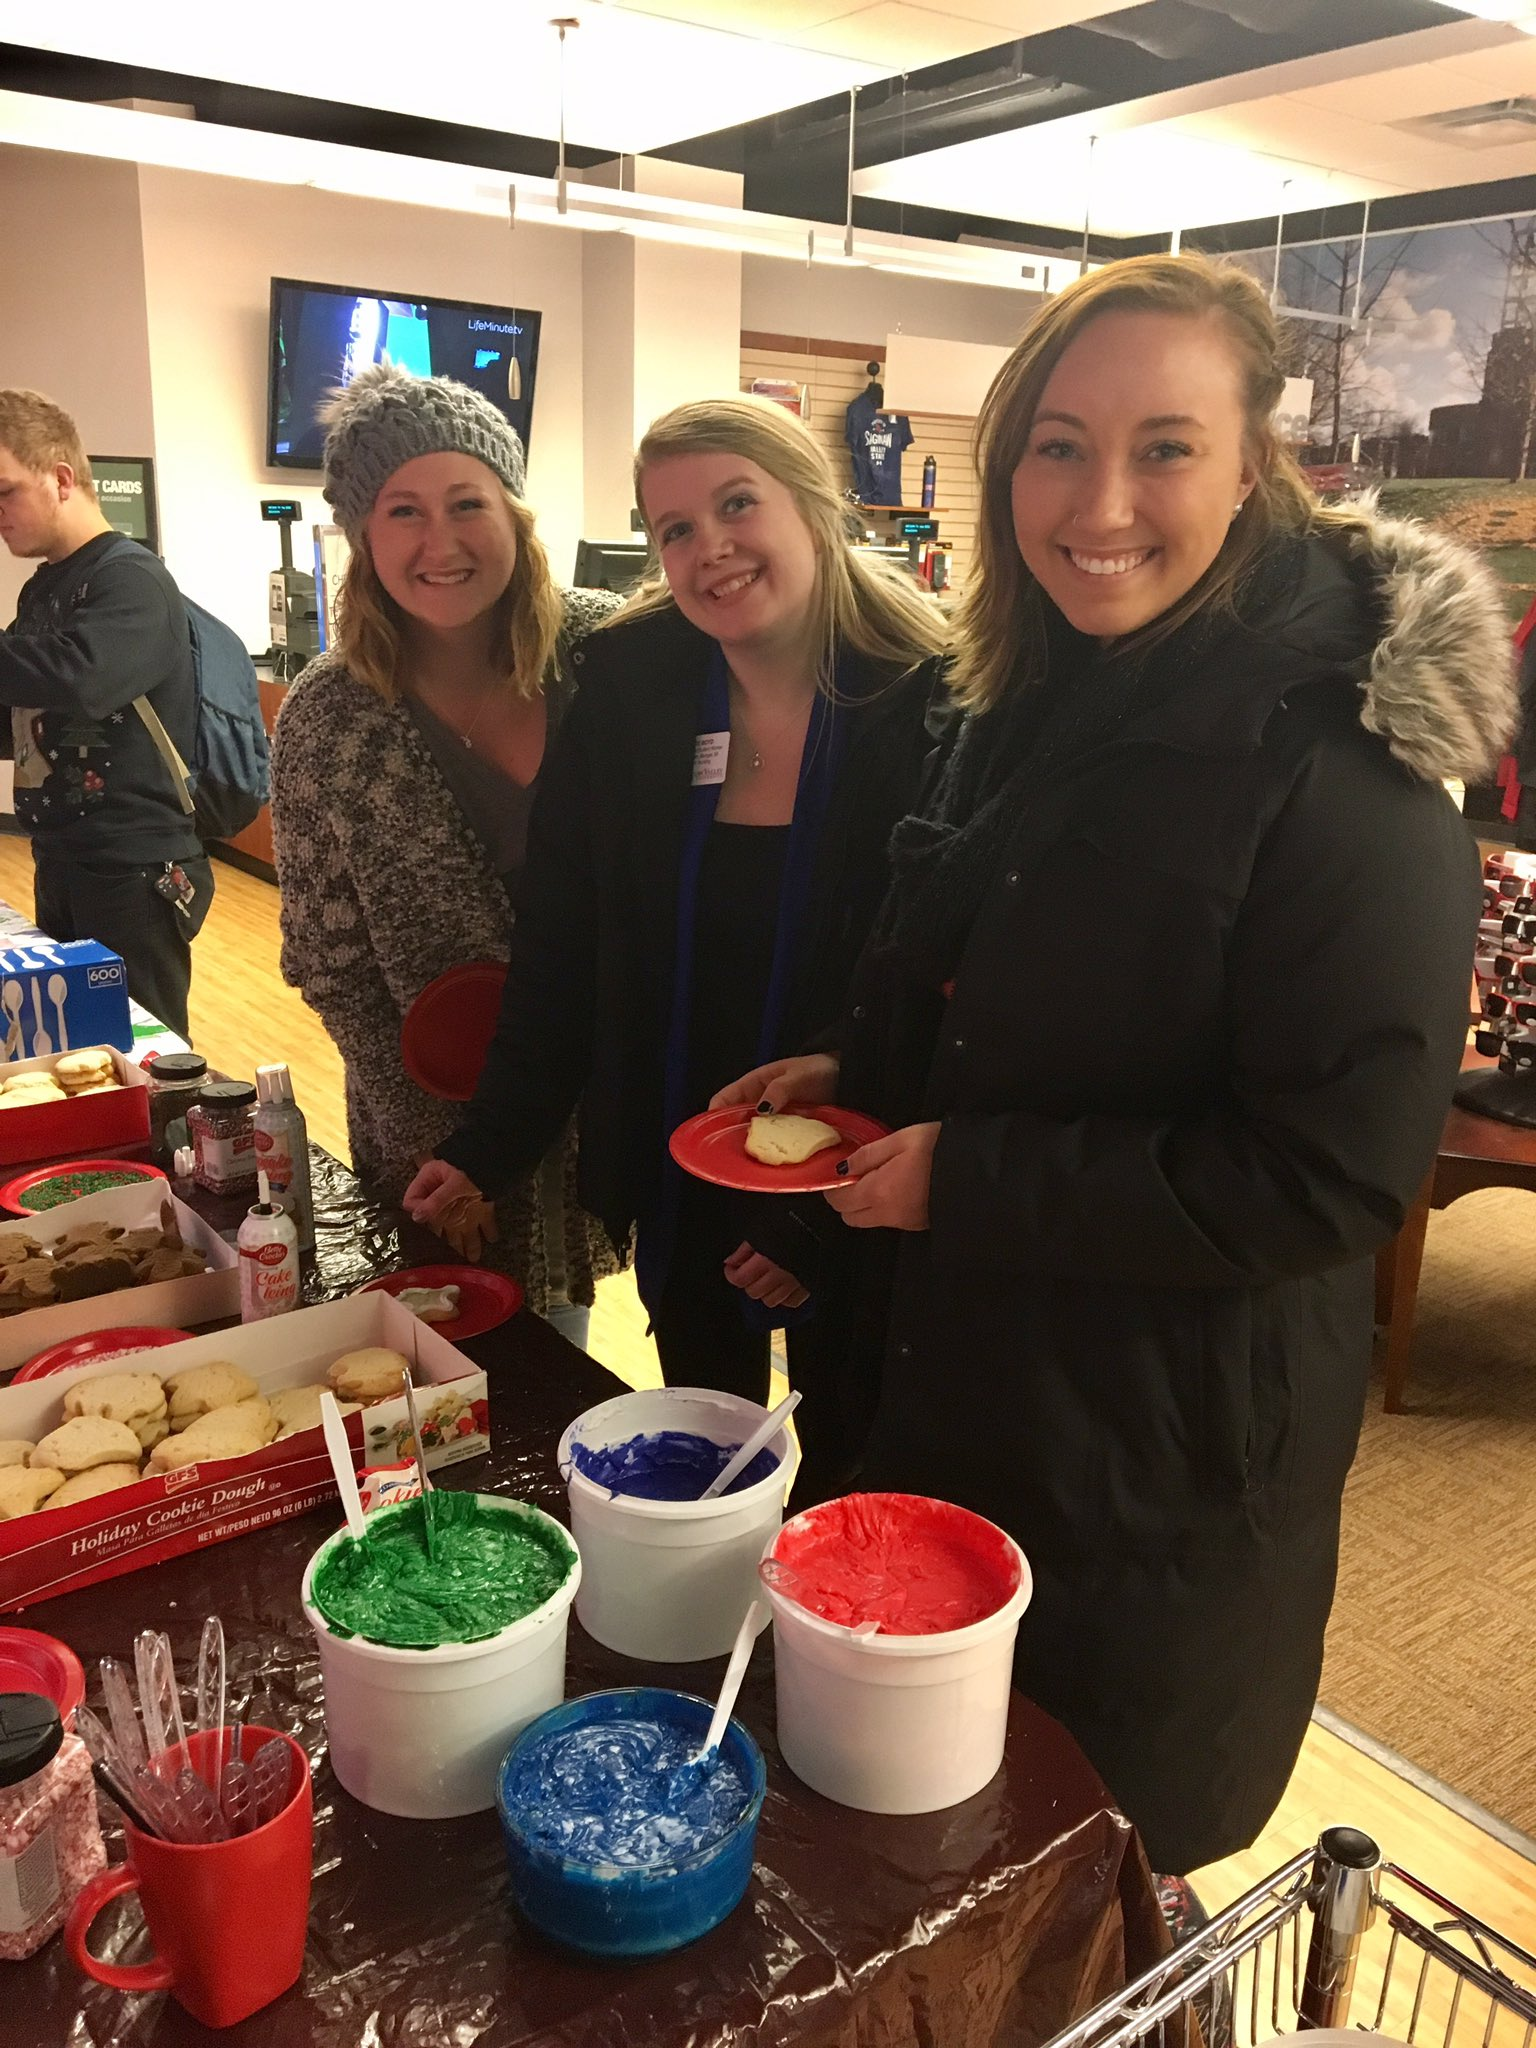 Shout-out to the @SVSUBookstore for hosting a cookie decorating event today! We're loving the holiday cheer! #WeCardinal https://t.co/00tId7MqMy